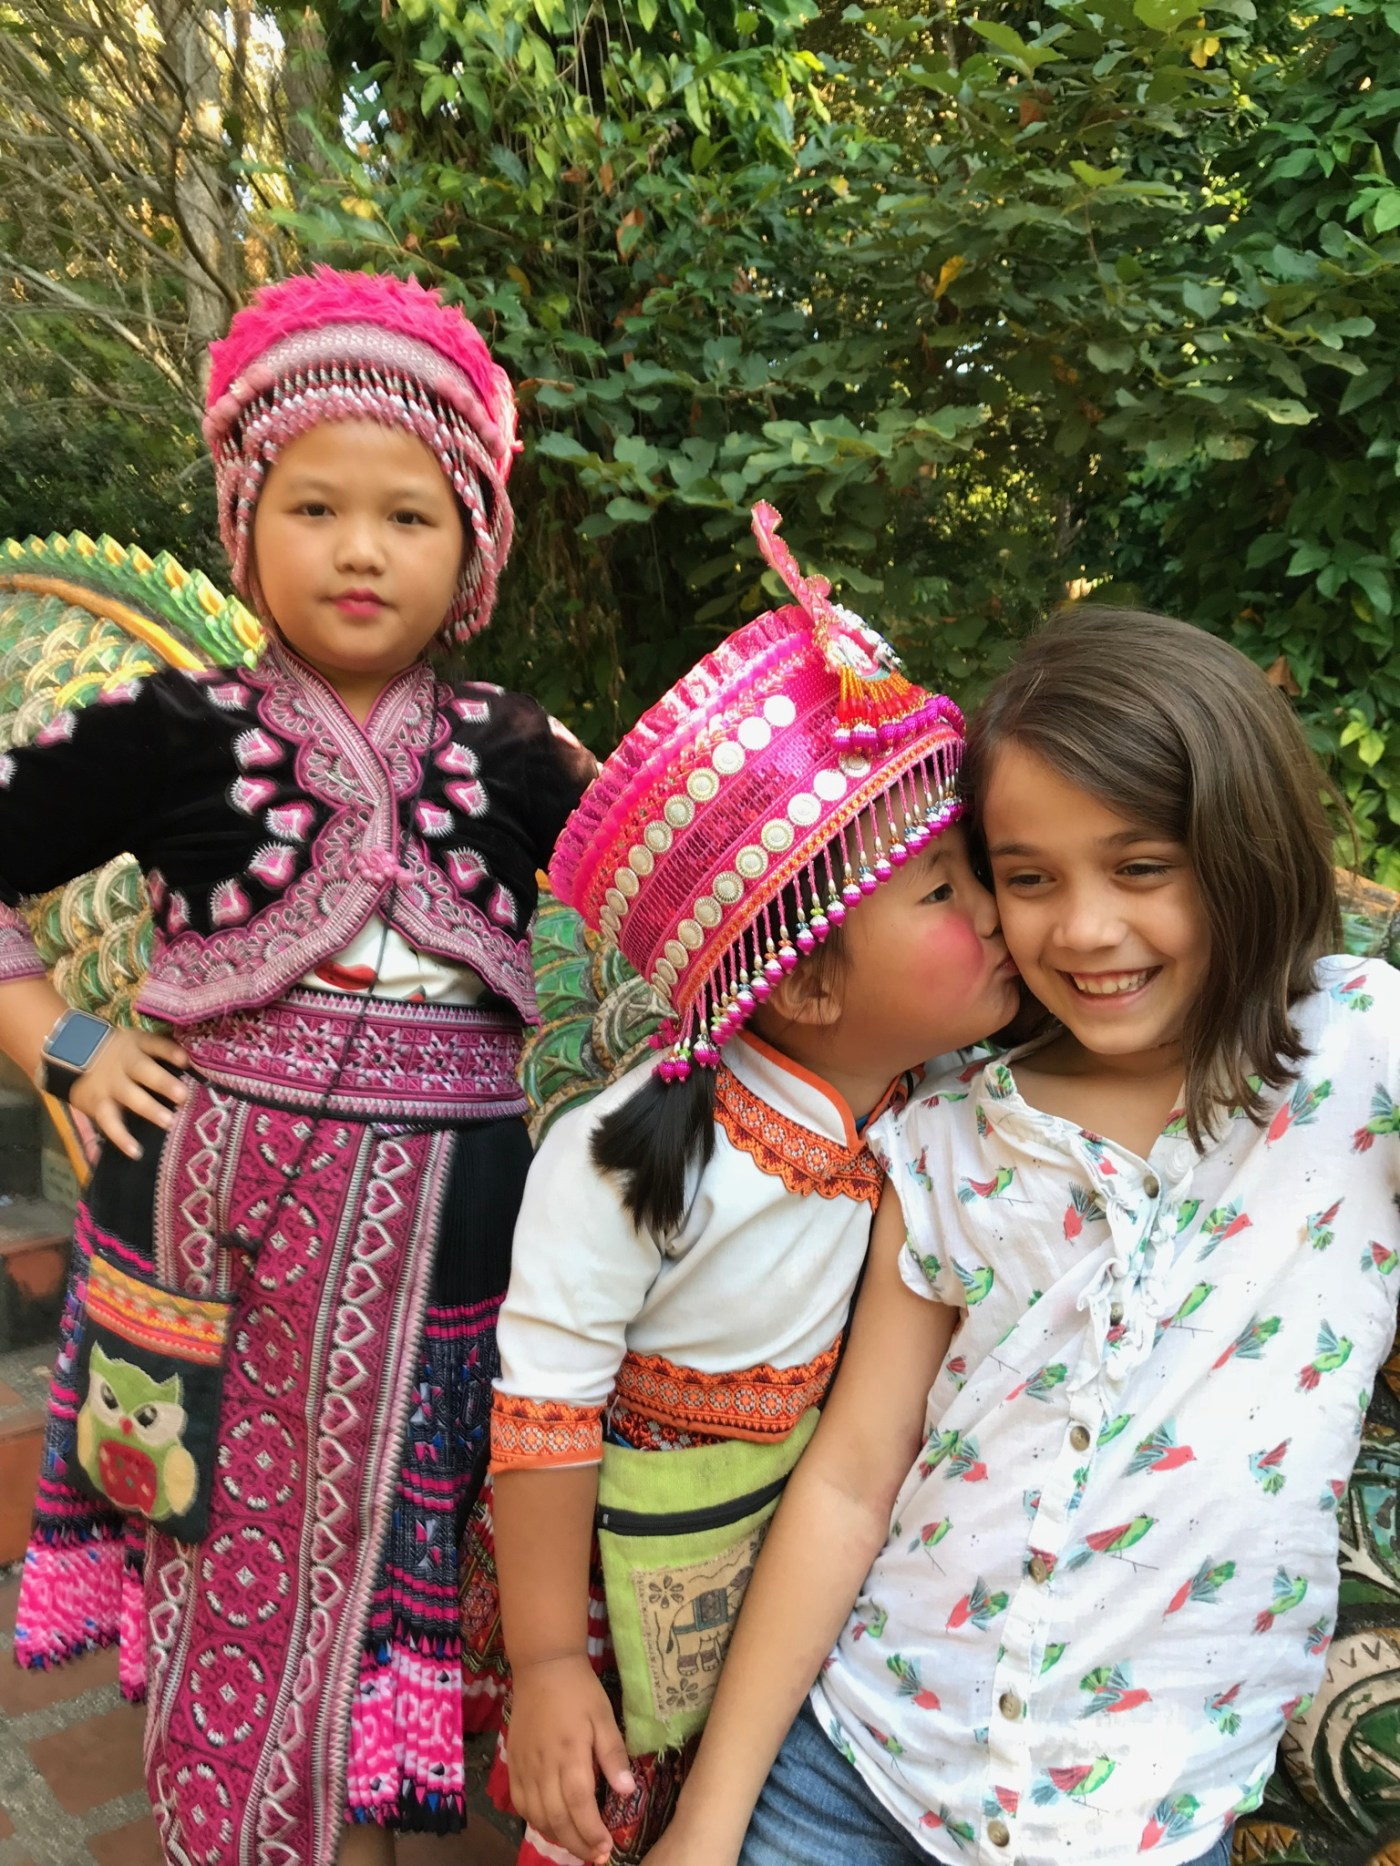 children learn and experience different cultures while traveling